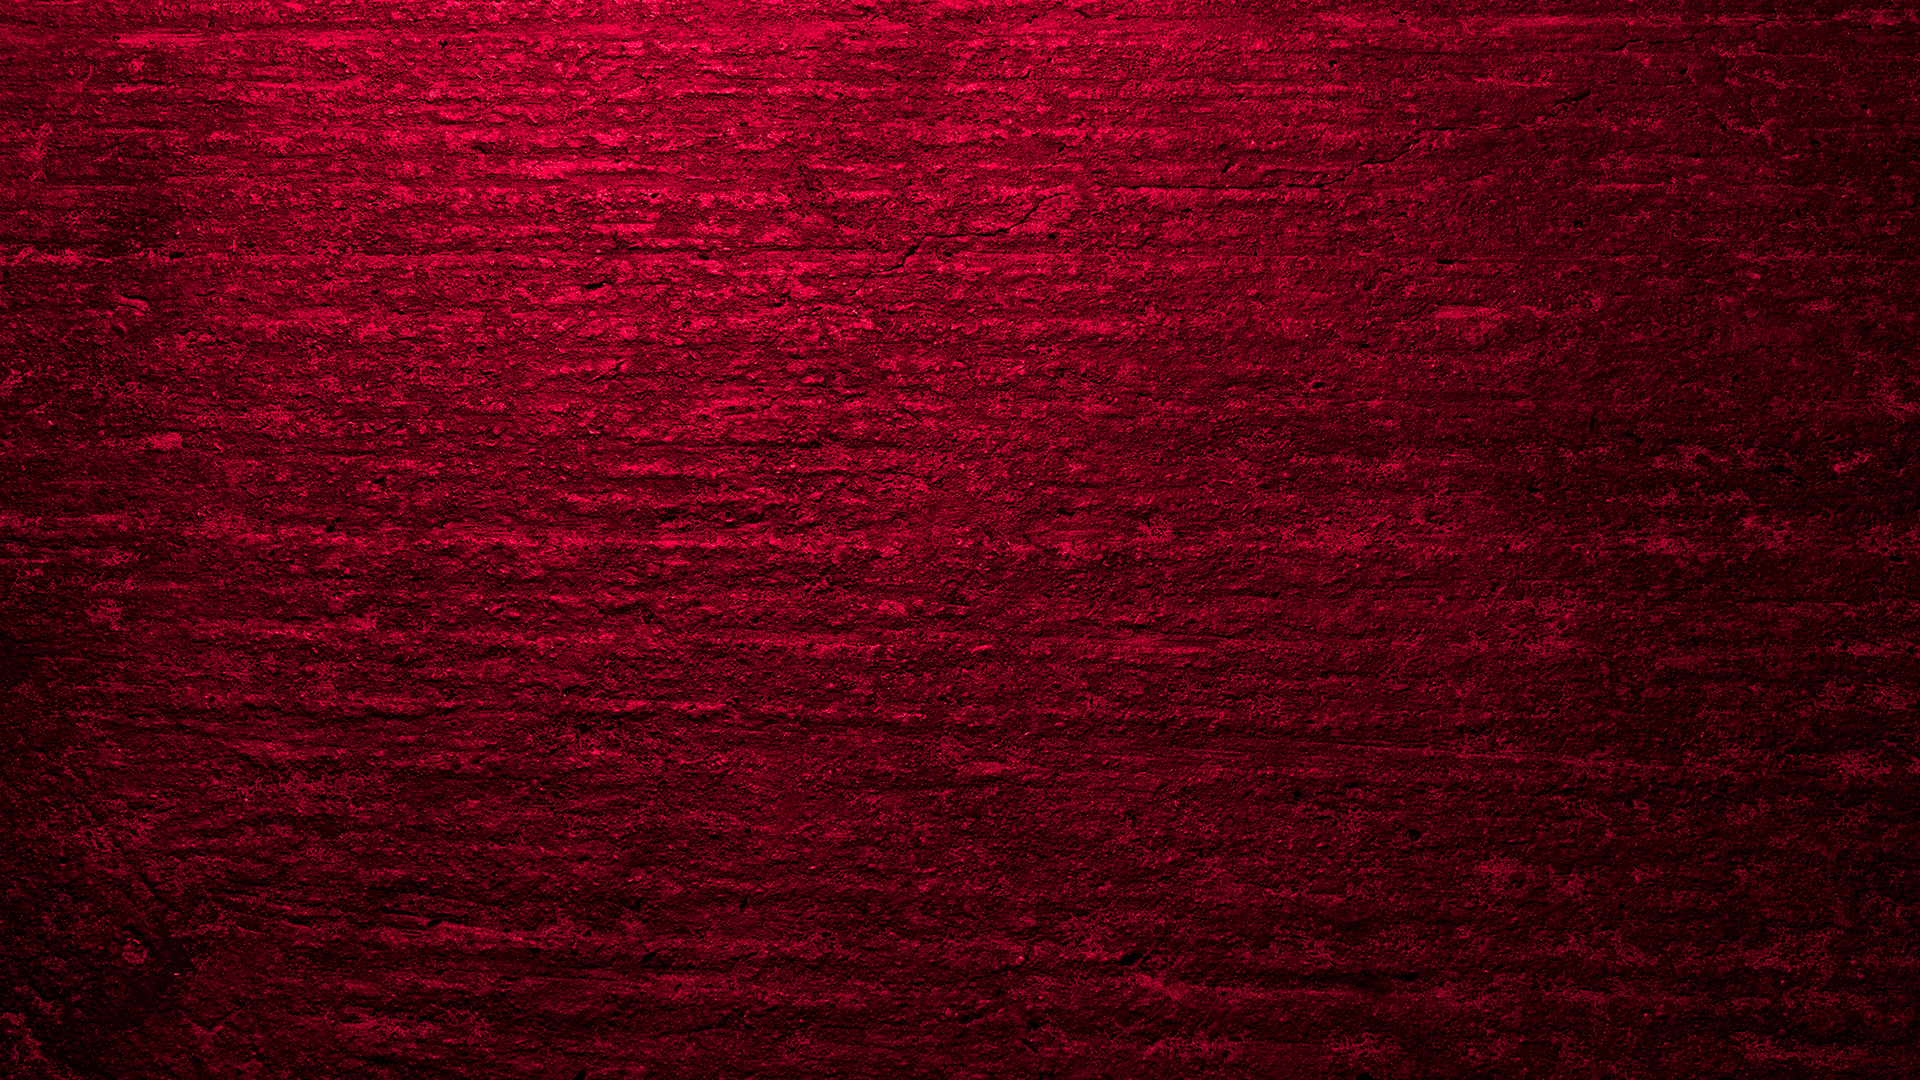 Paper Backgrounds Royalty Free Hd Image Of Background From Red Circuit Board Close Up Grunge Concrete Texture 1920 X 1080p